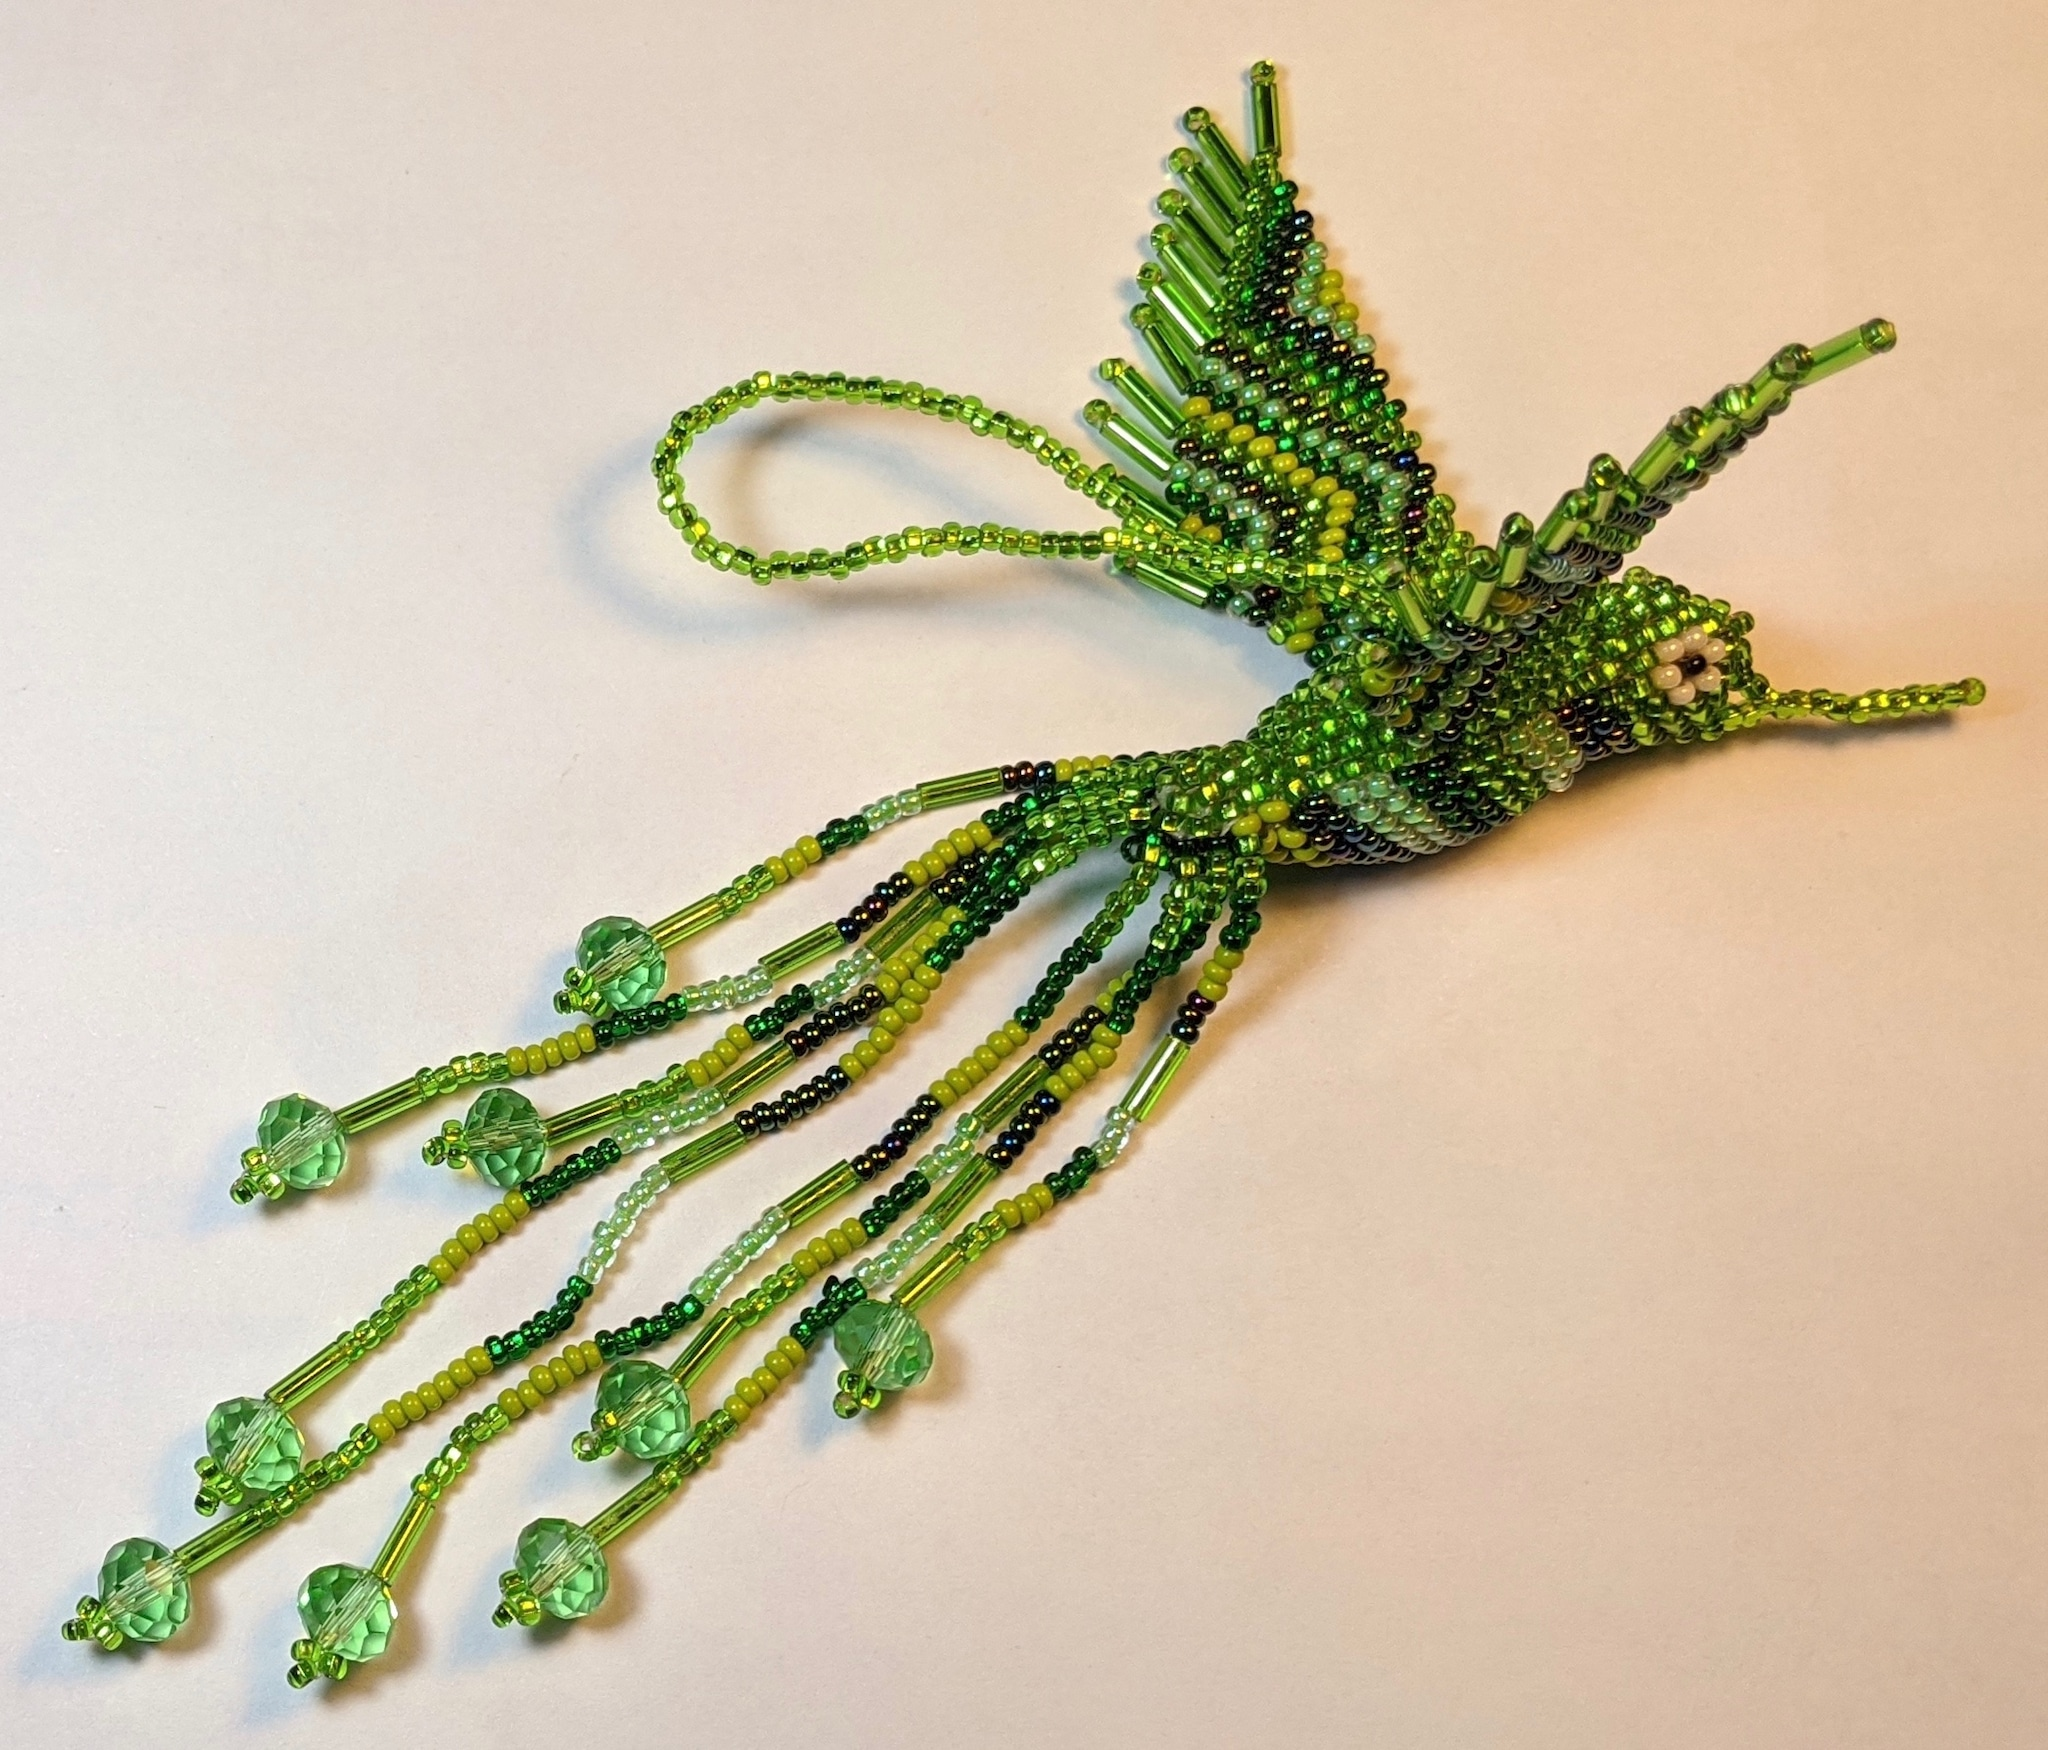 Hummingbird Beaded Ornament - Greens and Lime Green